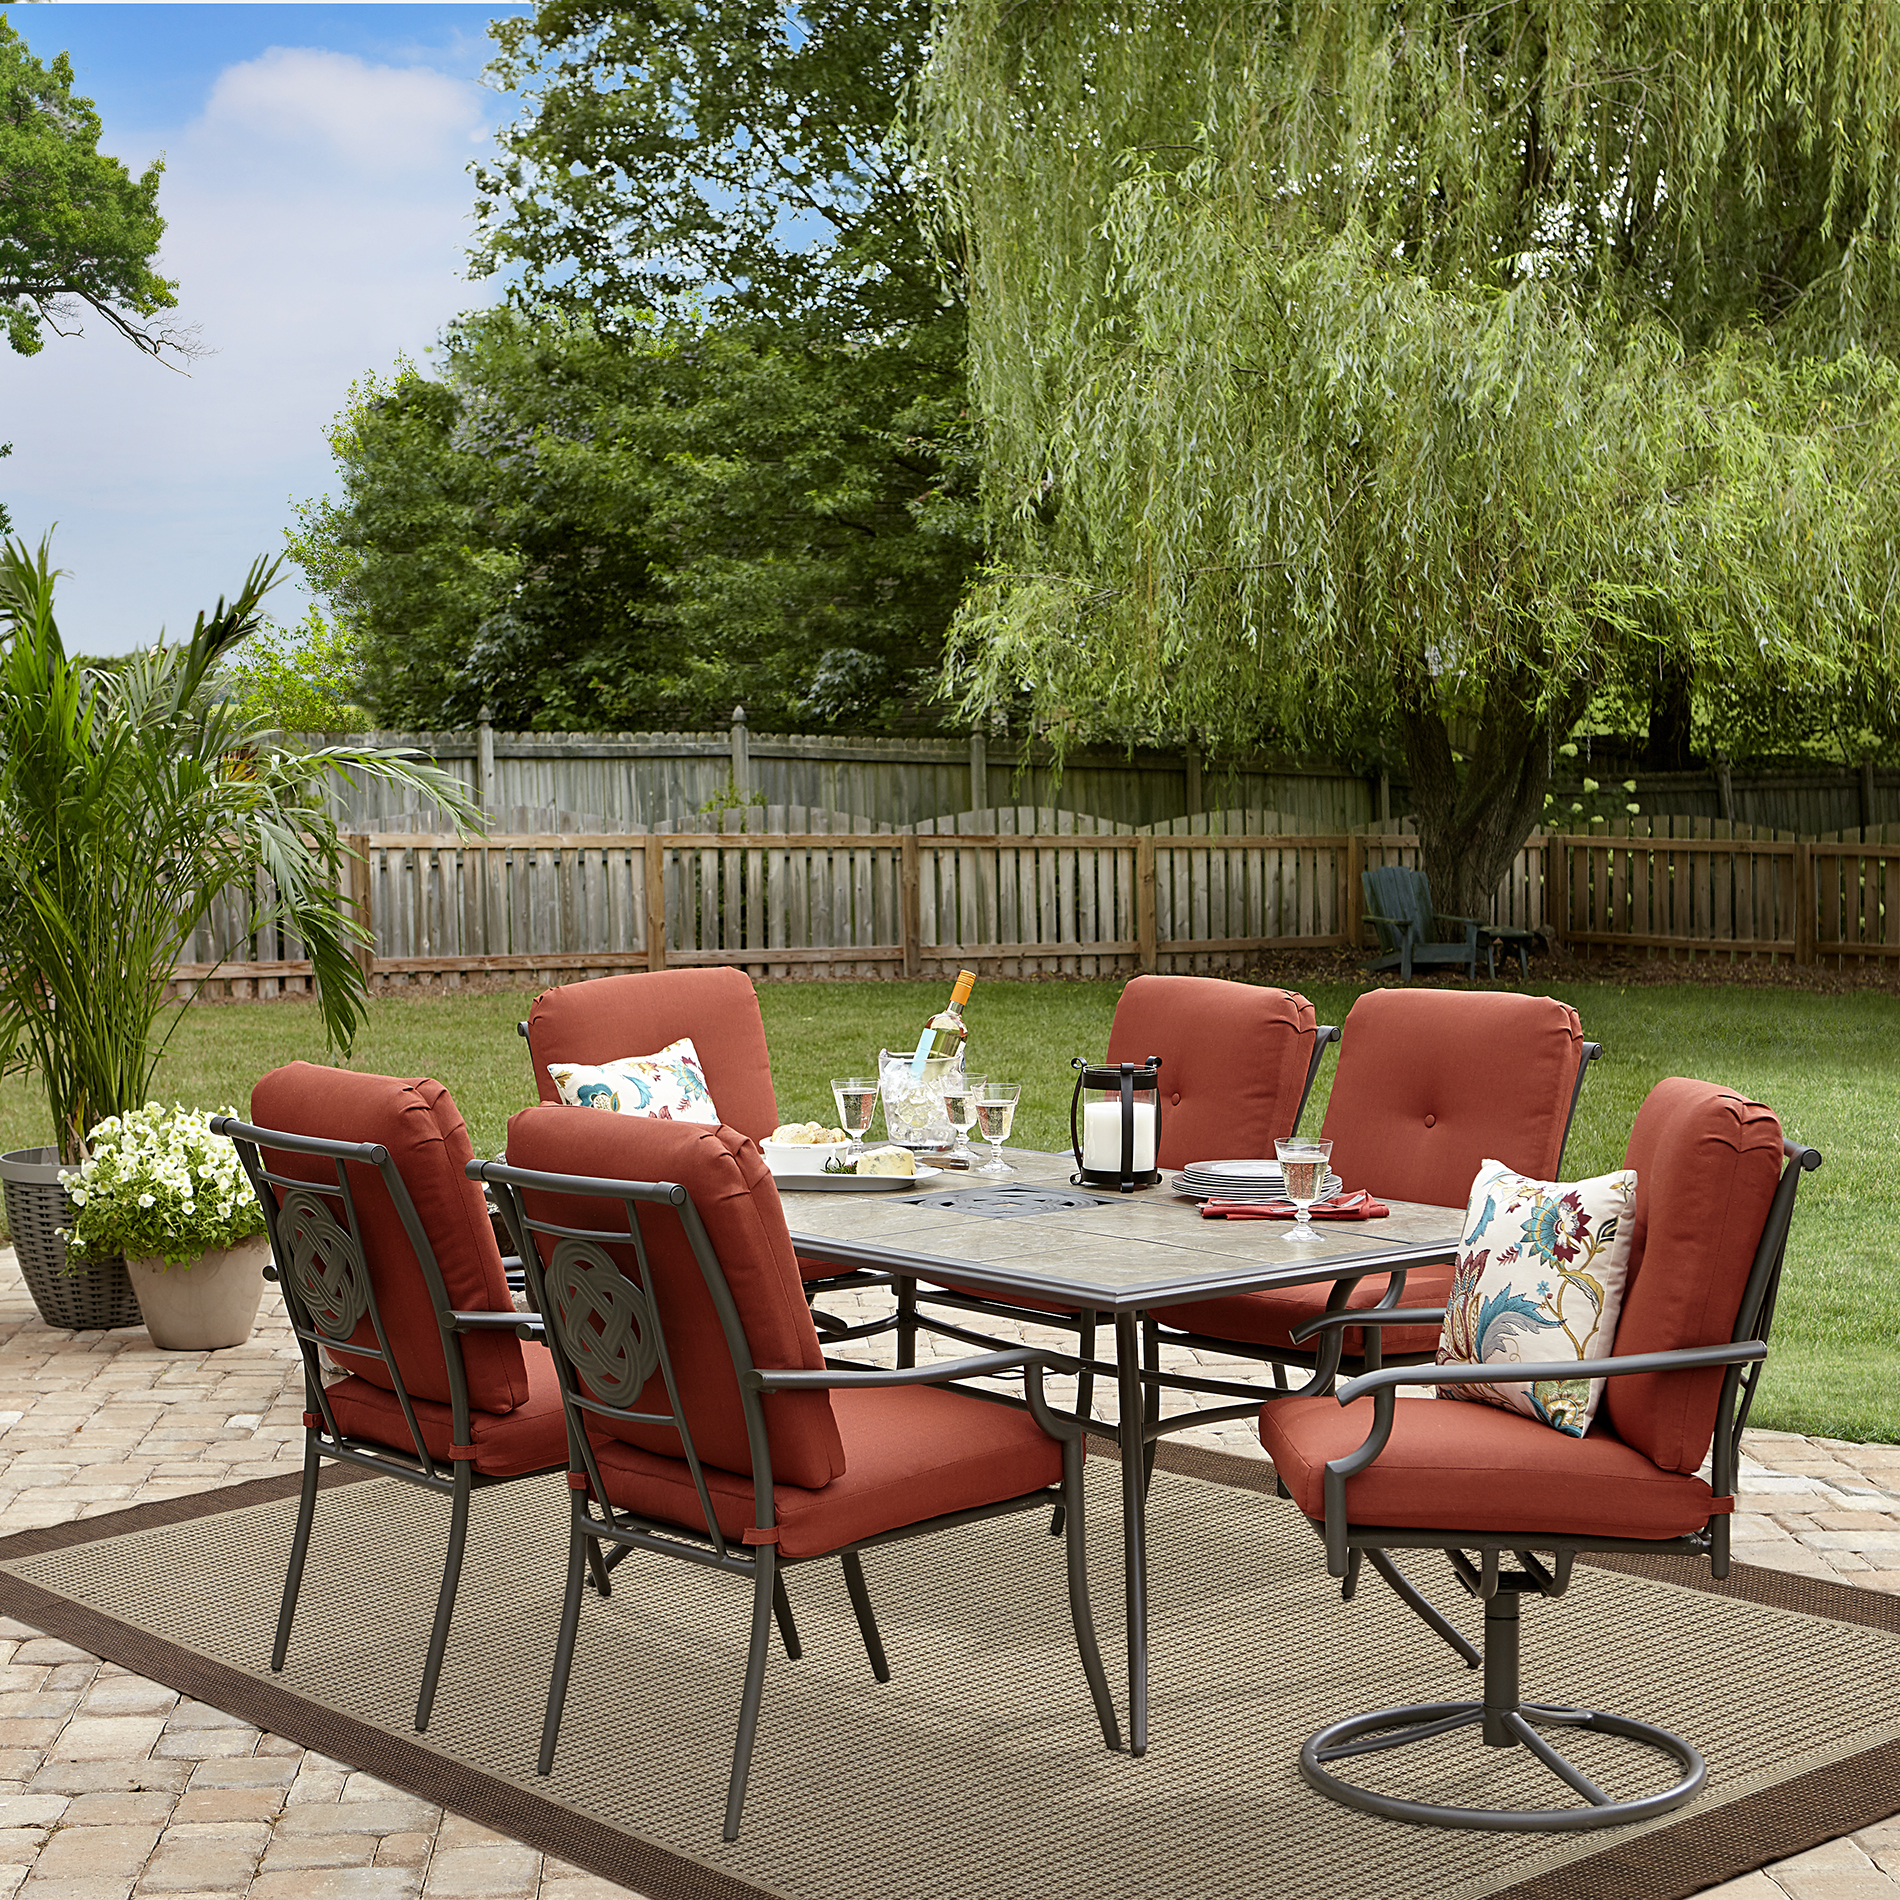 garden oasis patio chairs folding picnic table and tesco brookston 7 piece dining set terracotta